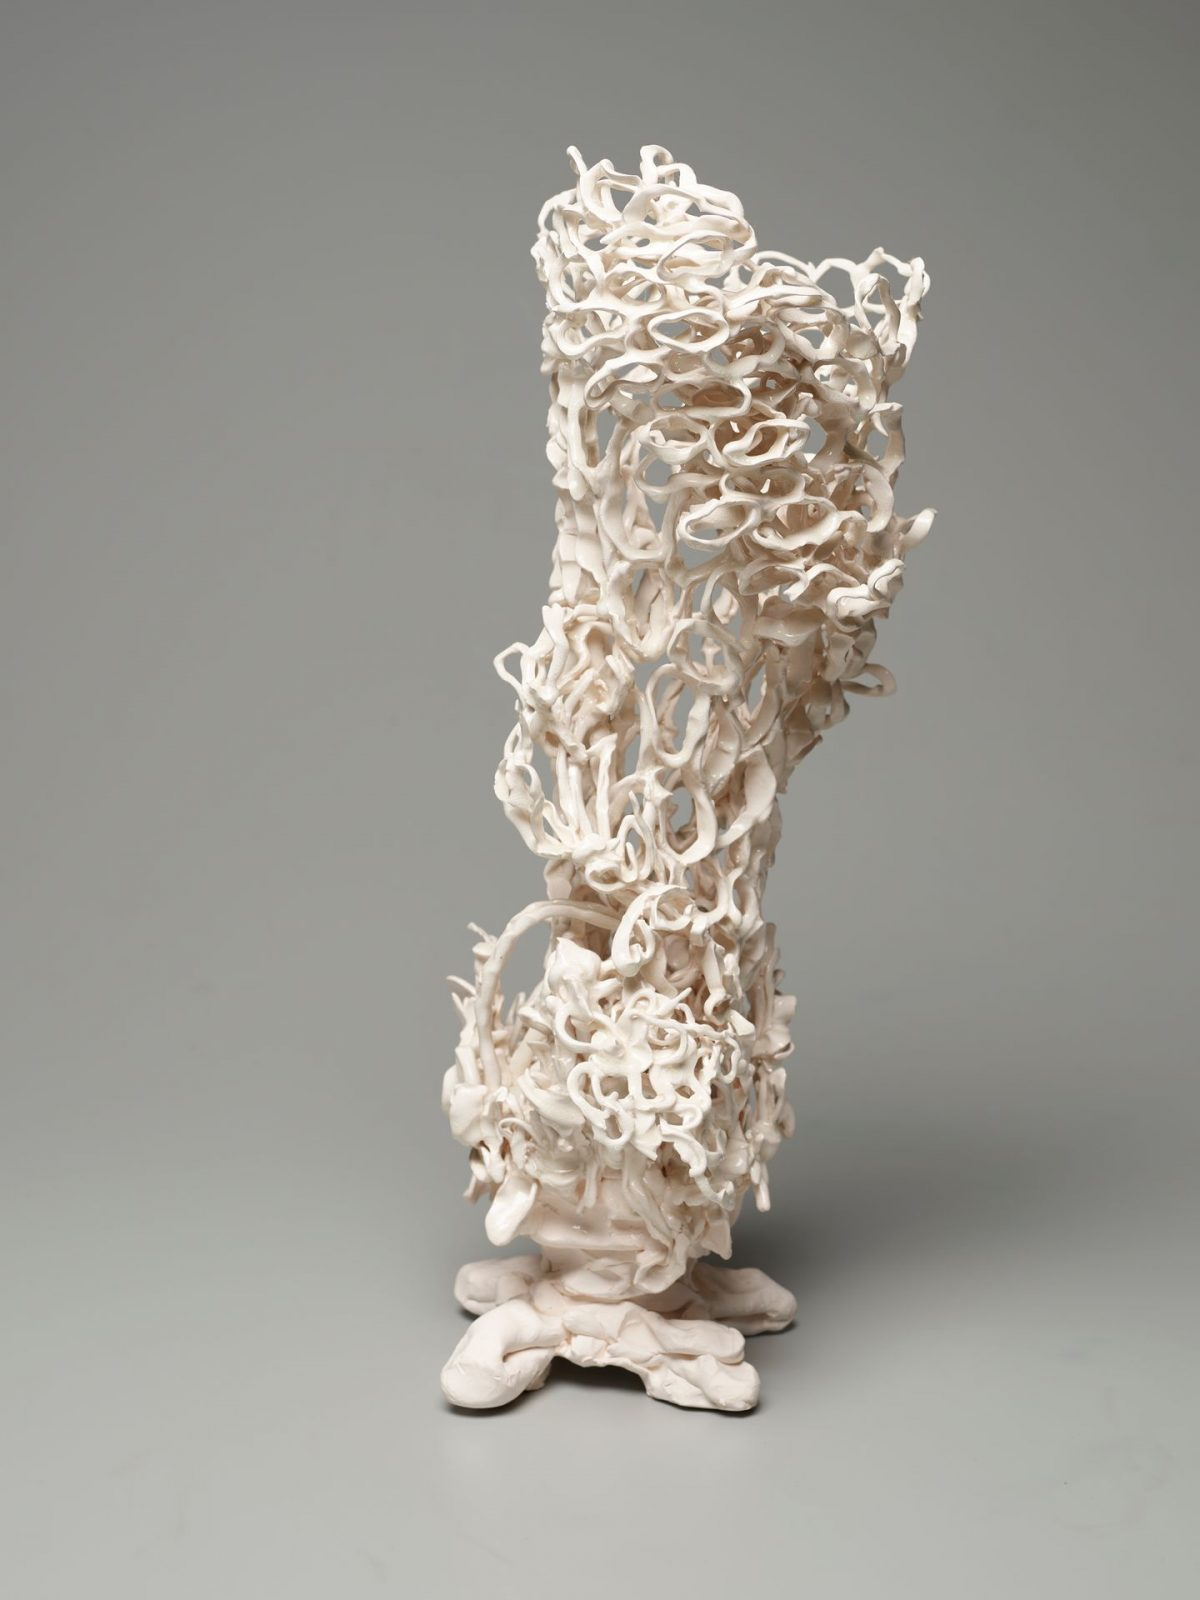 An open-work, vertical sculpture evoking the shape of a vase in creamy white. The surface is composed of oval clay loops that connect irregularly to create a highly textured lace-like body that sits on four folded clay coils. The structure appears to lean slightly to the left in this view and shows clay loops both crowded and compressed in areas like upper right and stretched and spaced in the lower left part of the sculpture. This gives the work an organic quality of perhaps coral or a sea creature.